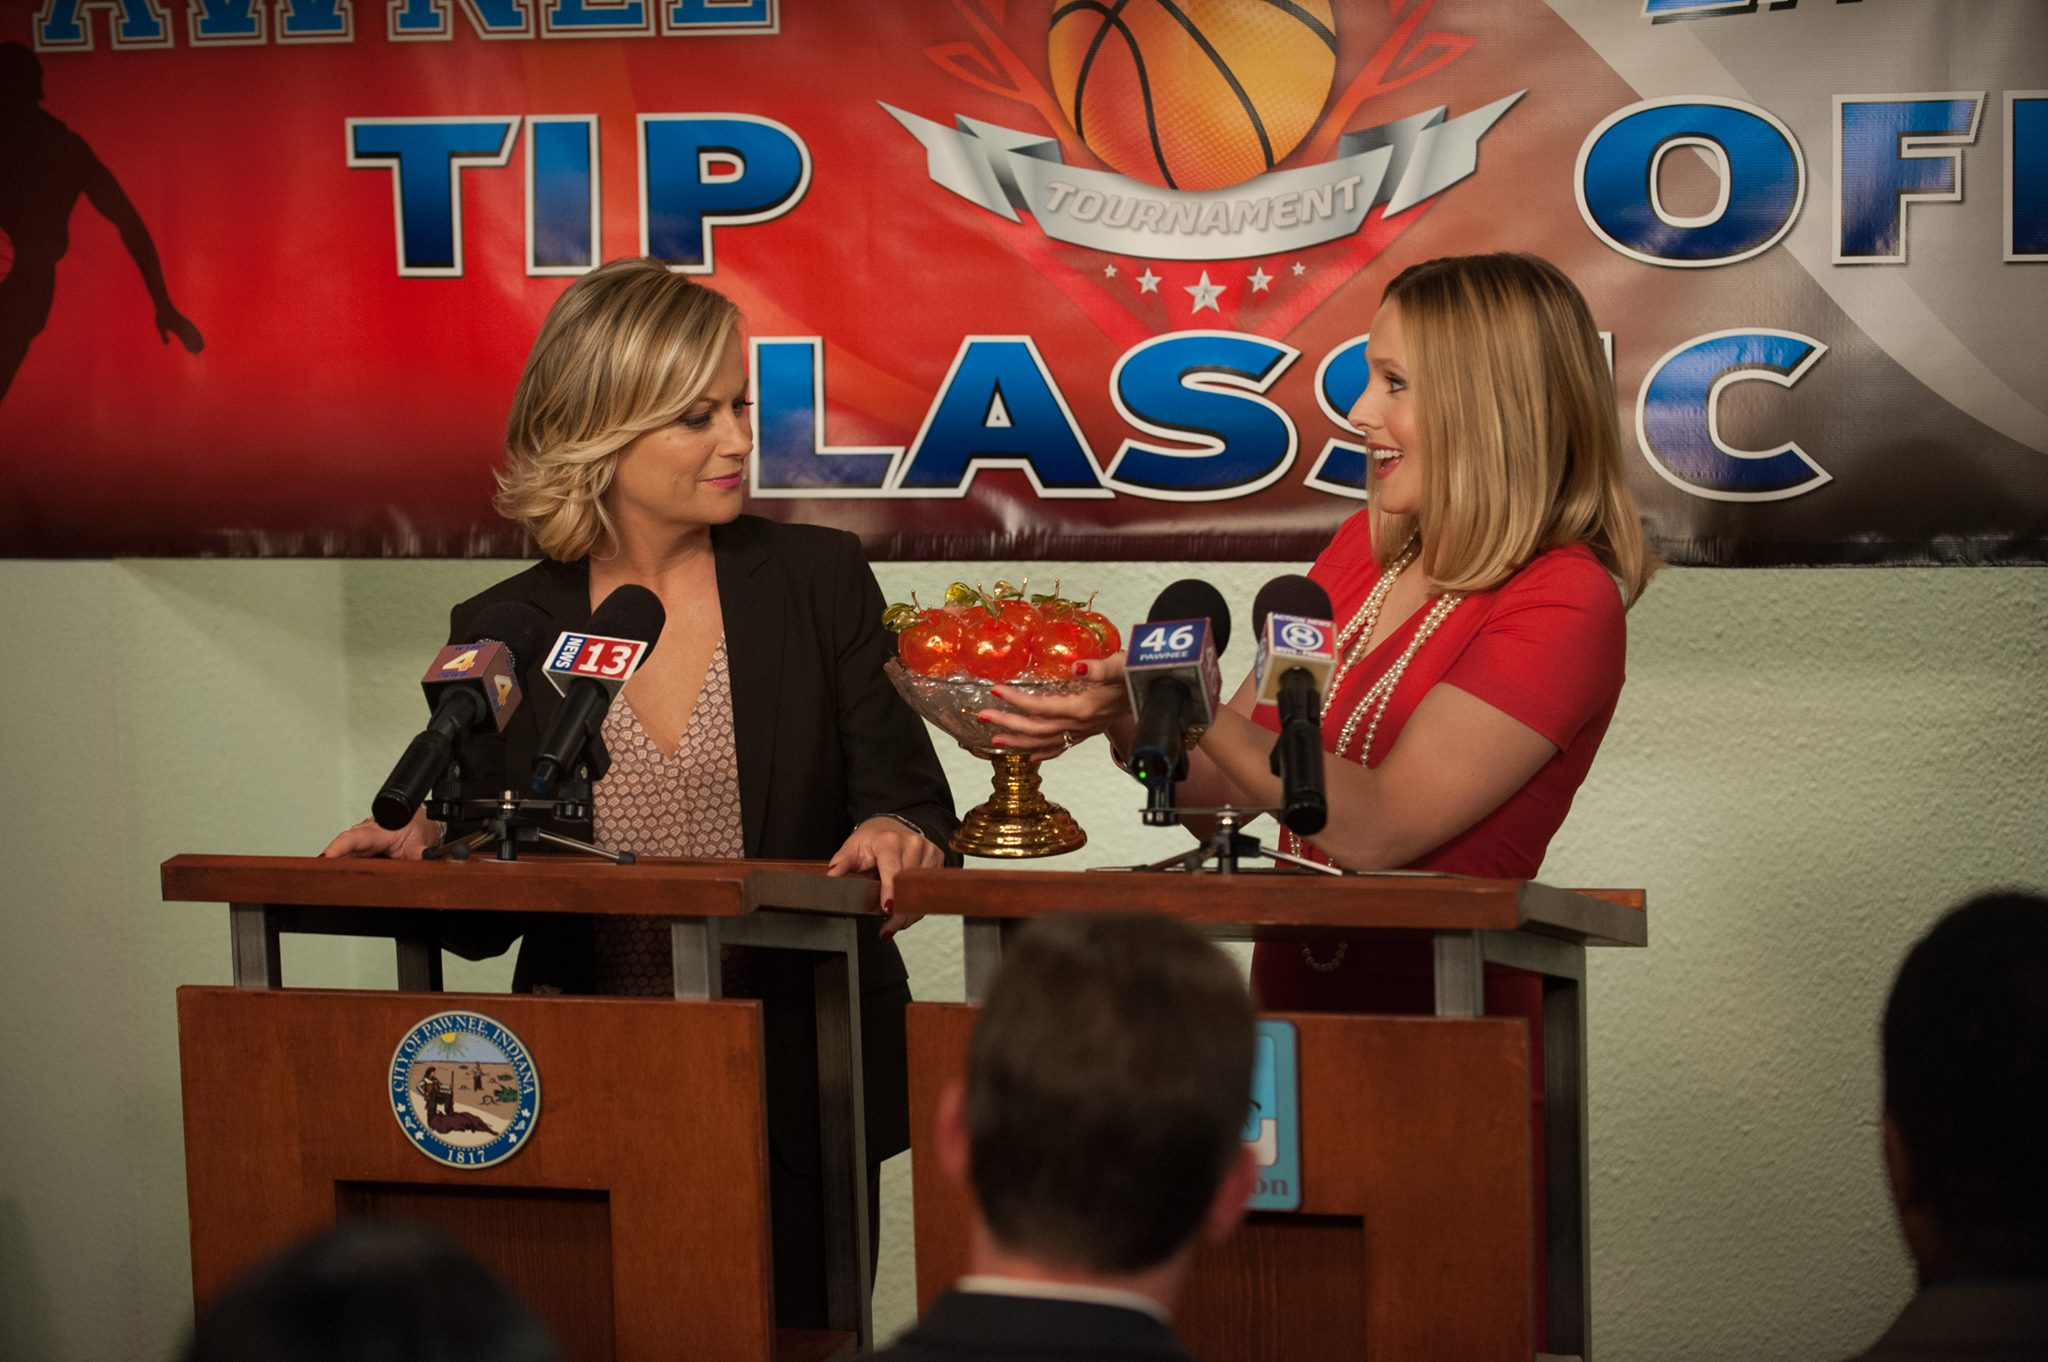 Parks and Recreation - 06x03 - The Pawnee-Eagleton Tip Off Classic